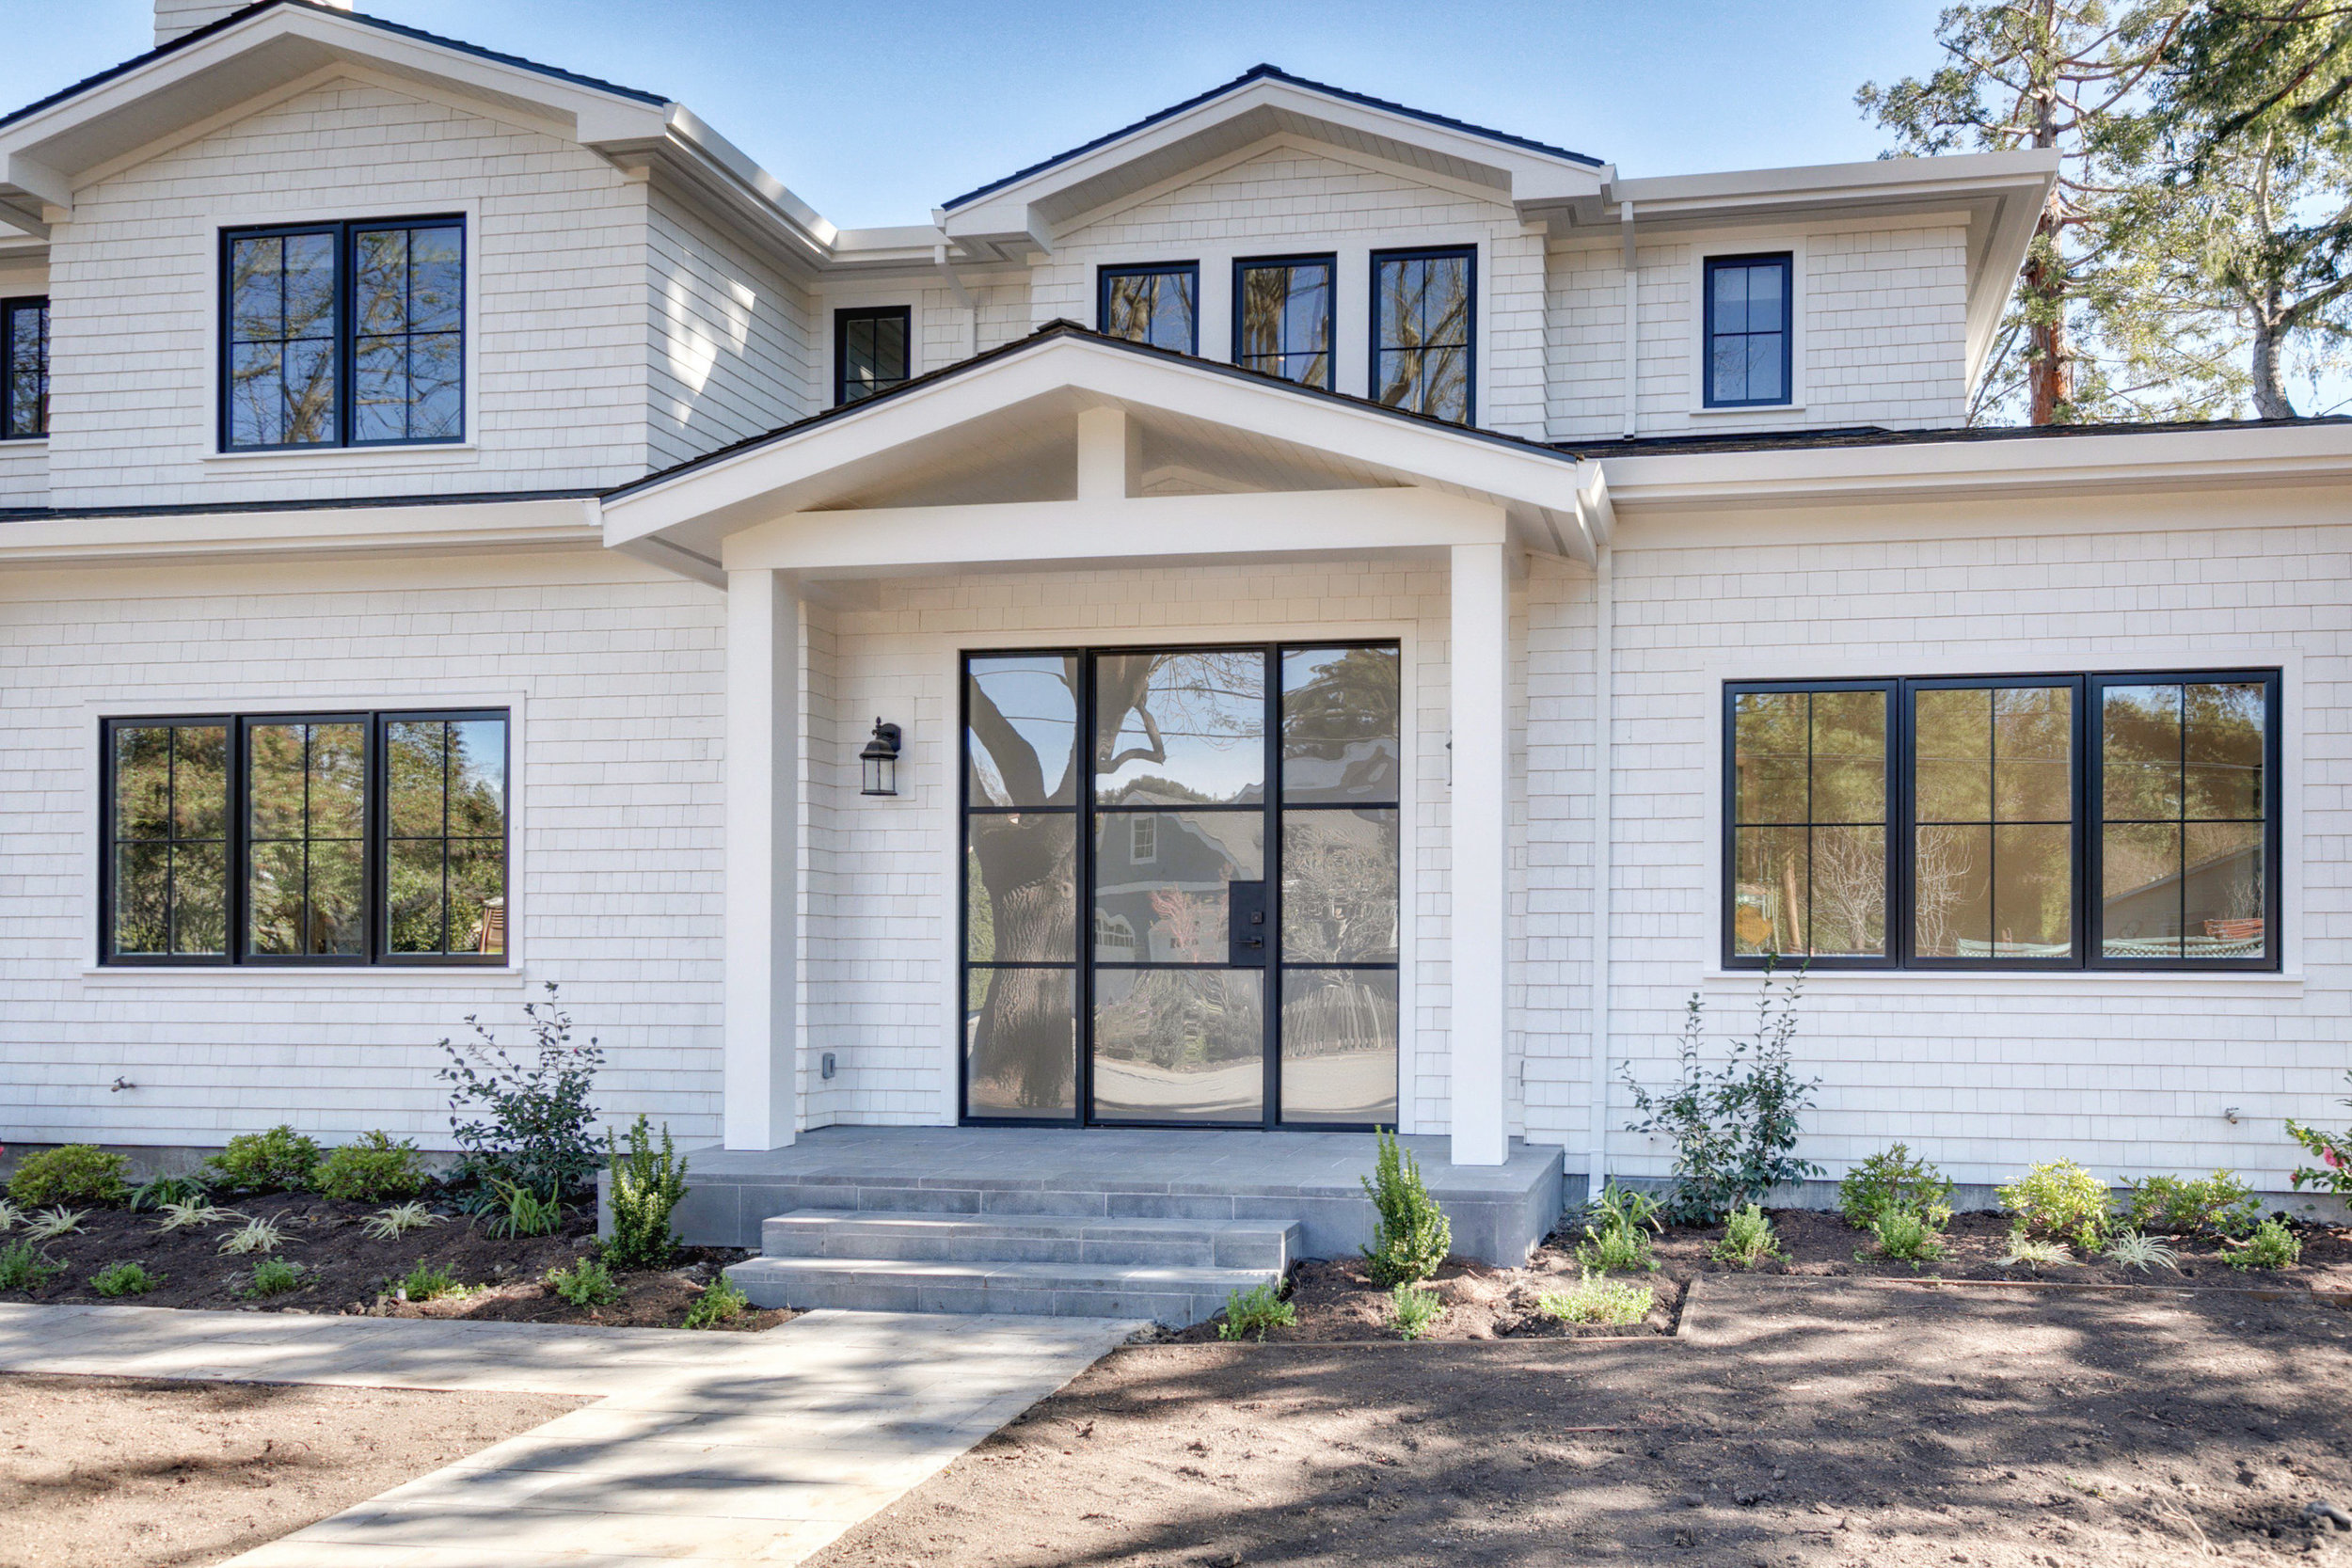 SOLD: 1931 Camino A Los Cerros, Menlo Park  Classic architectural form with a modern twist paired with contemporary interior  Offered at $5,325,000